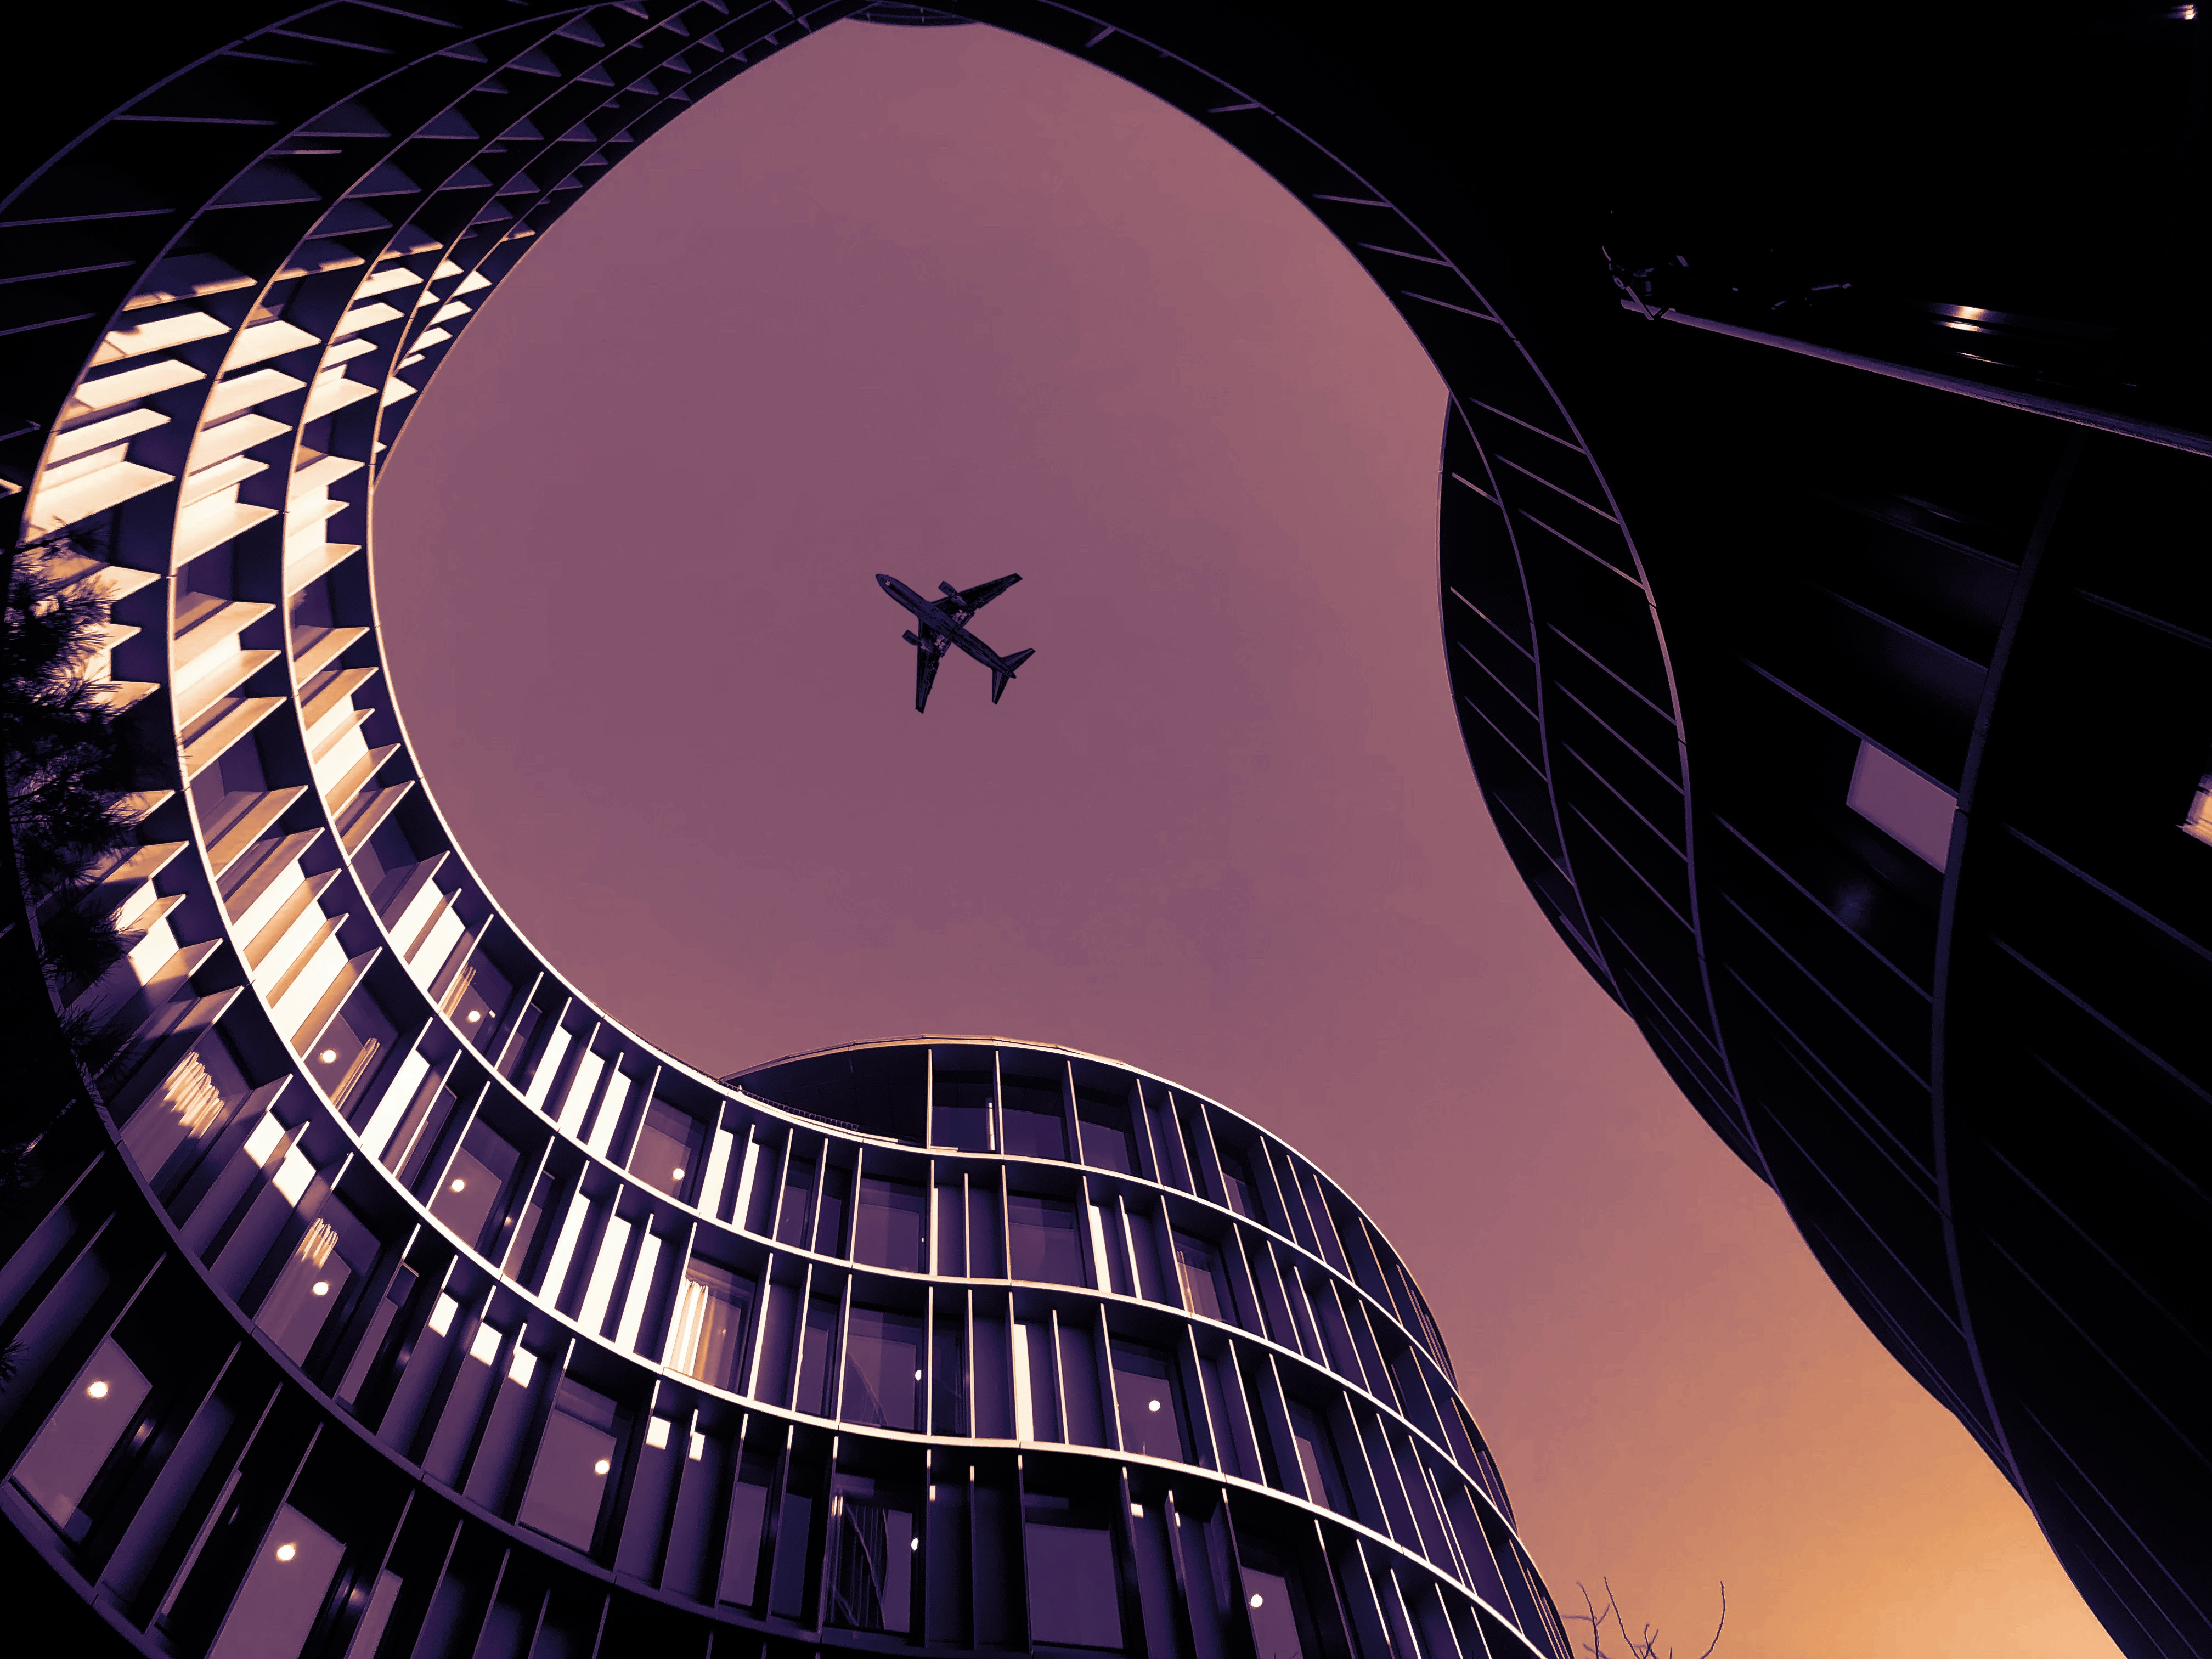 Airplane over buildings